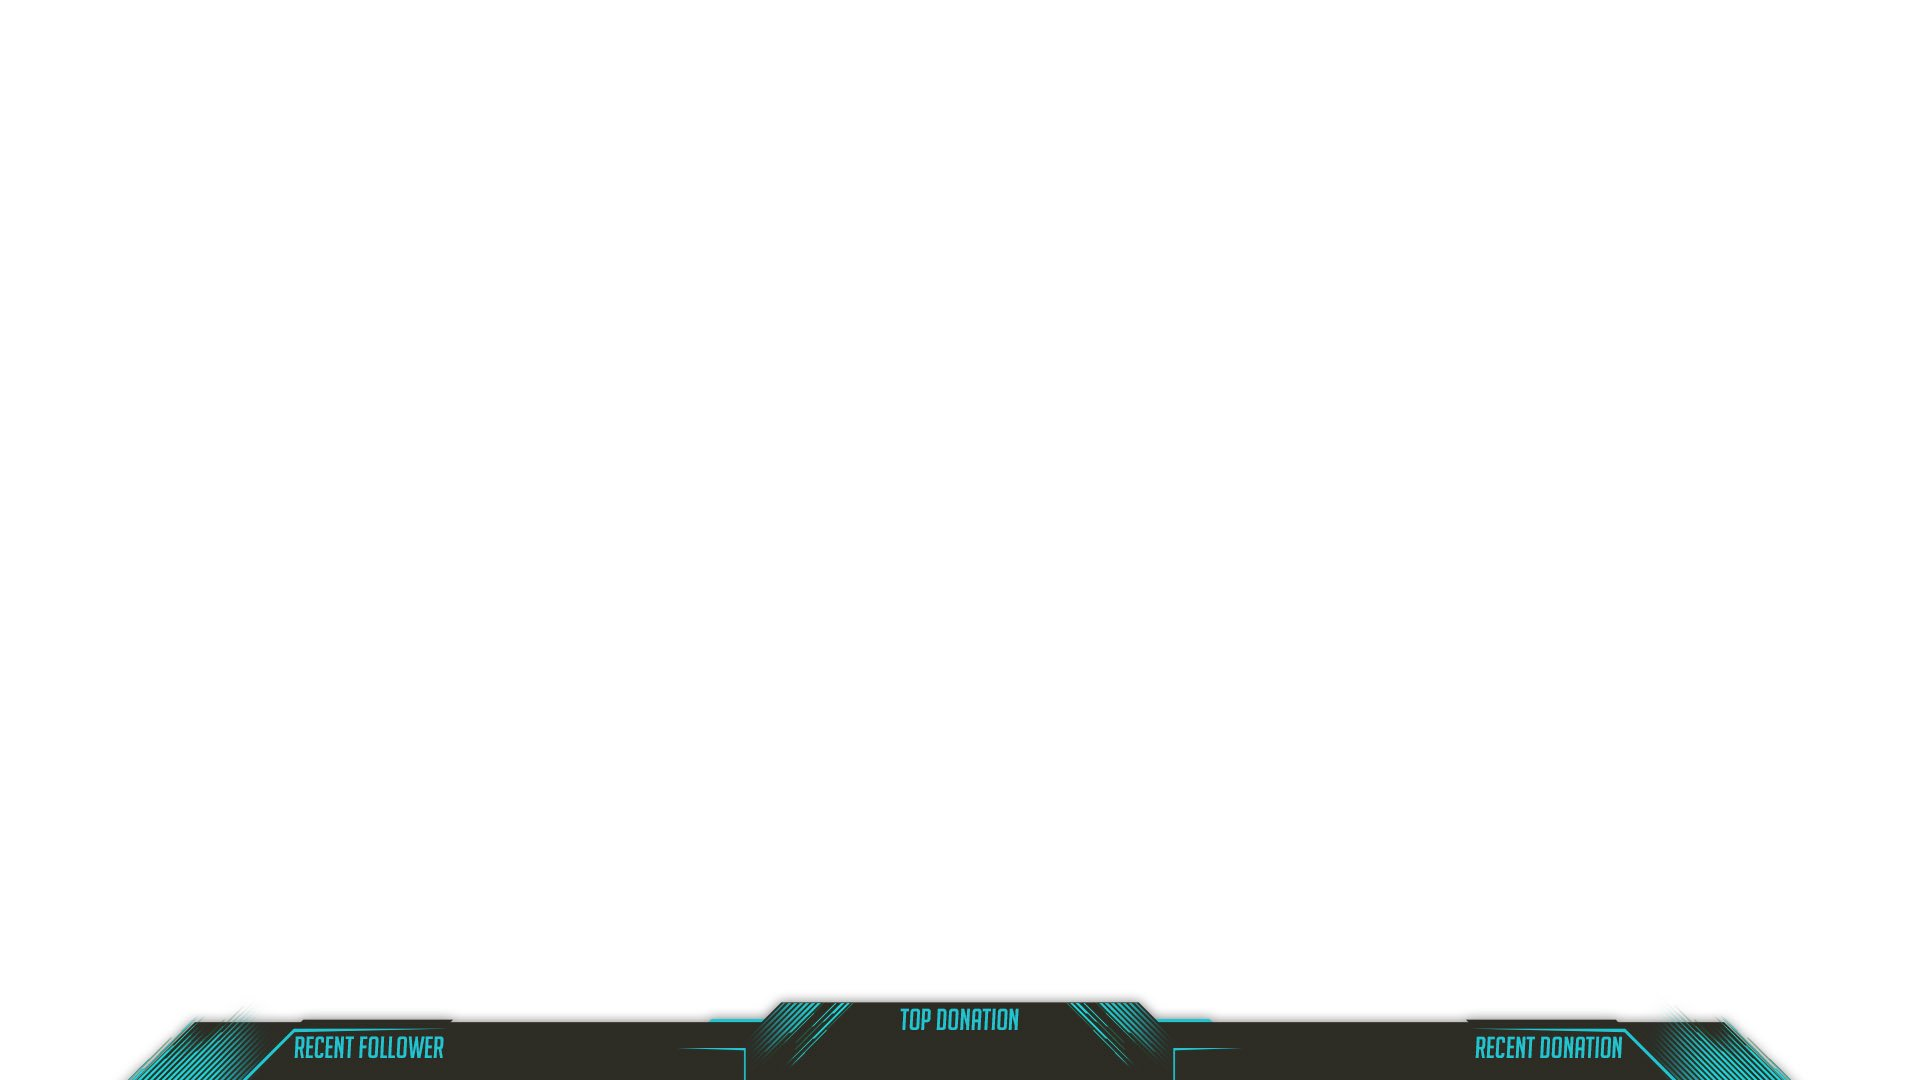 fifa twitch ovleray template